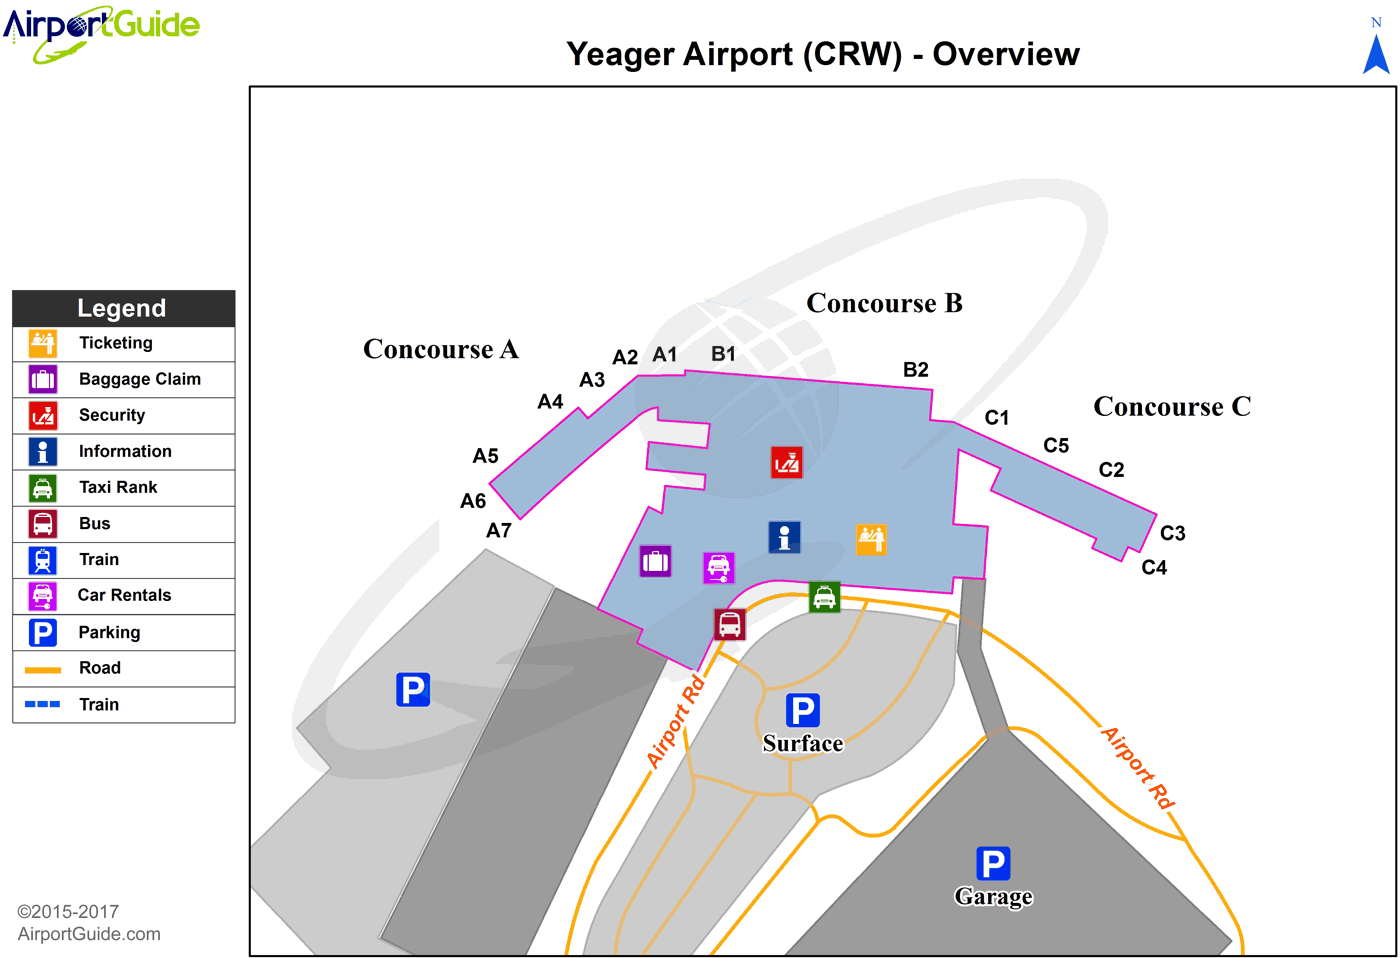 Charleston - Yeager (CRW) Airport Terminal Map - Overview